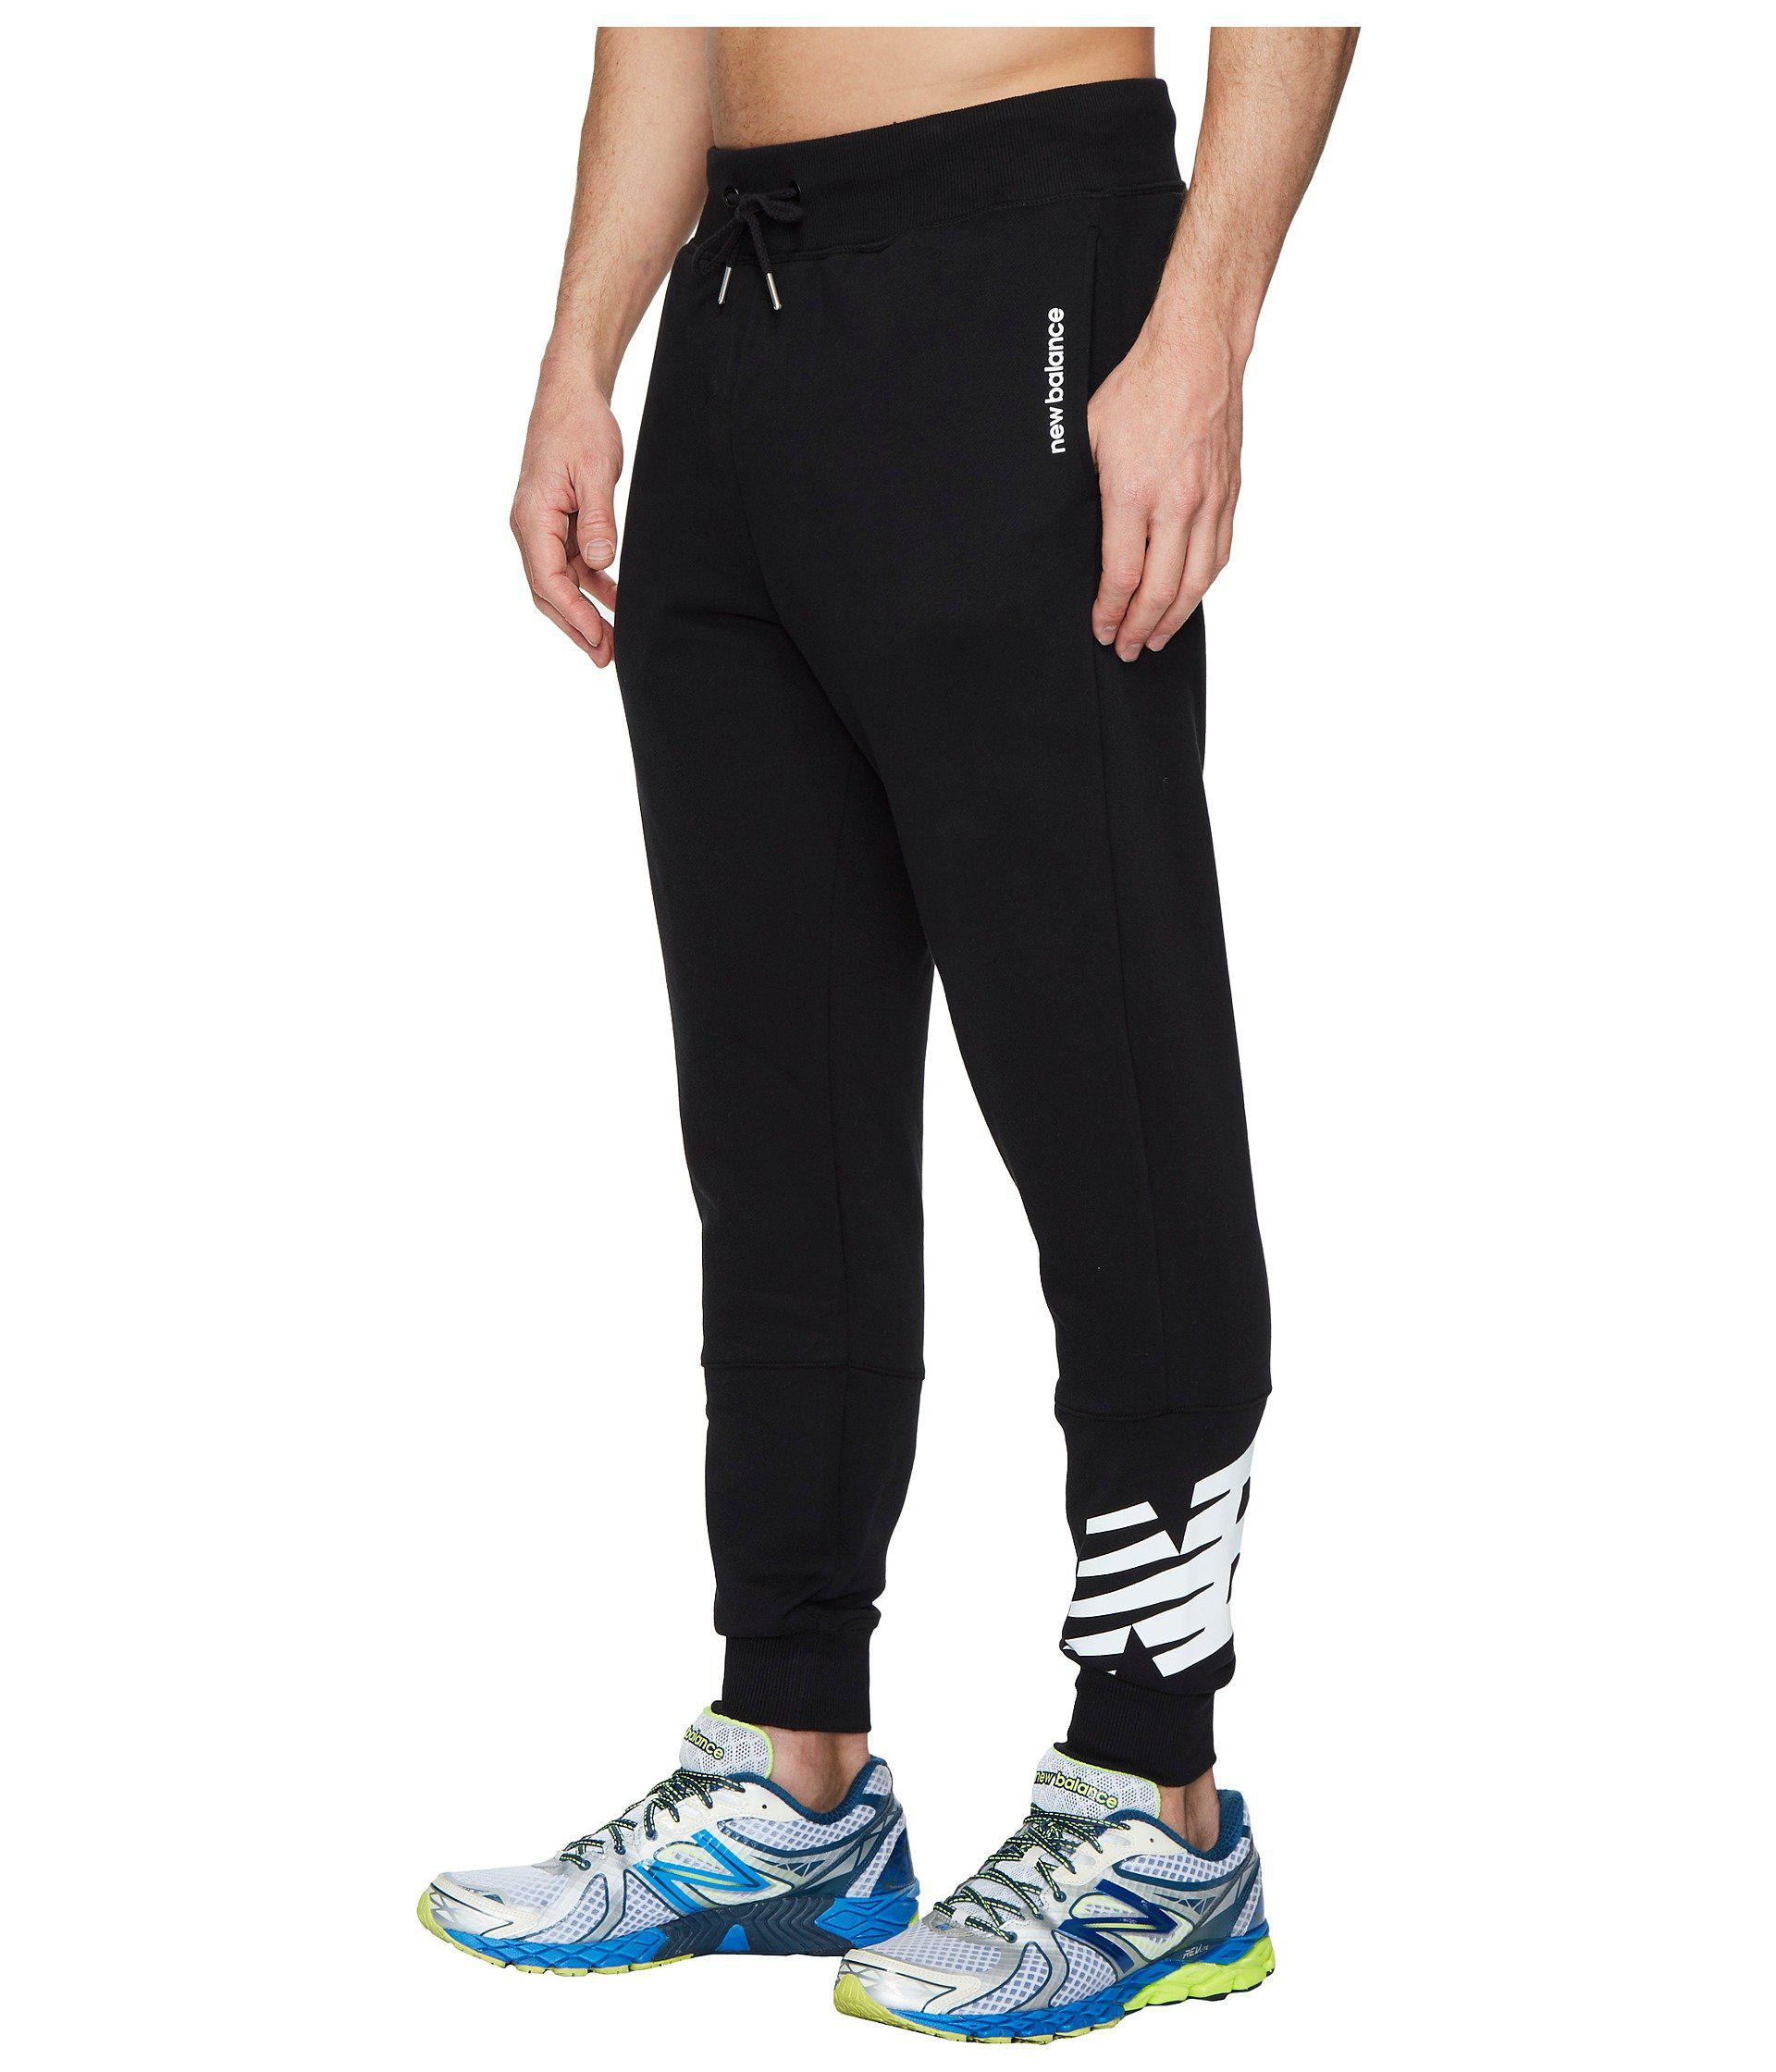 New Balance Cotton Essentials Ft Graphic Sweatpants in Black for Men - Lyst